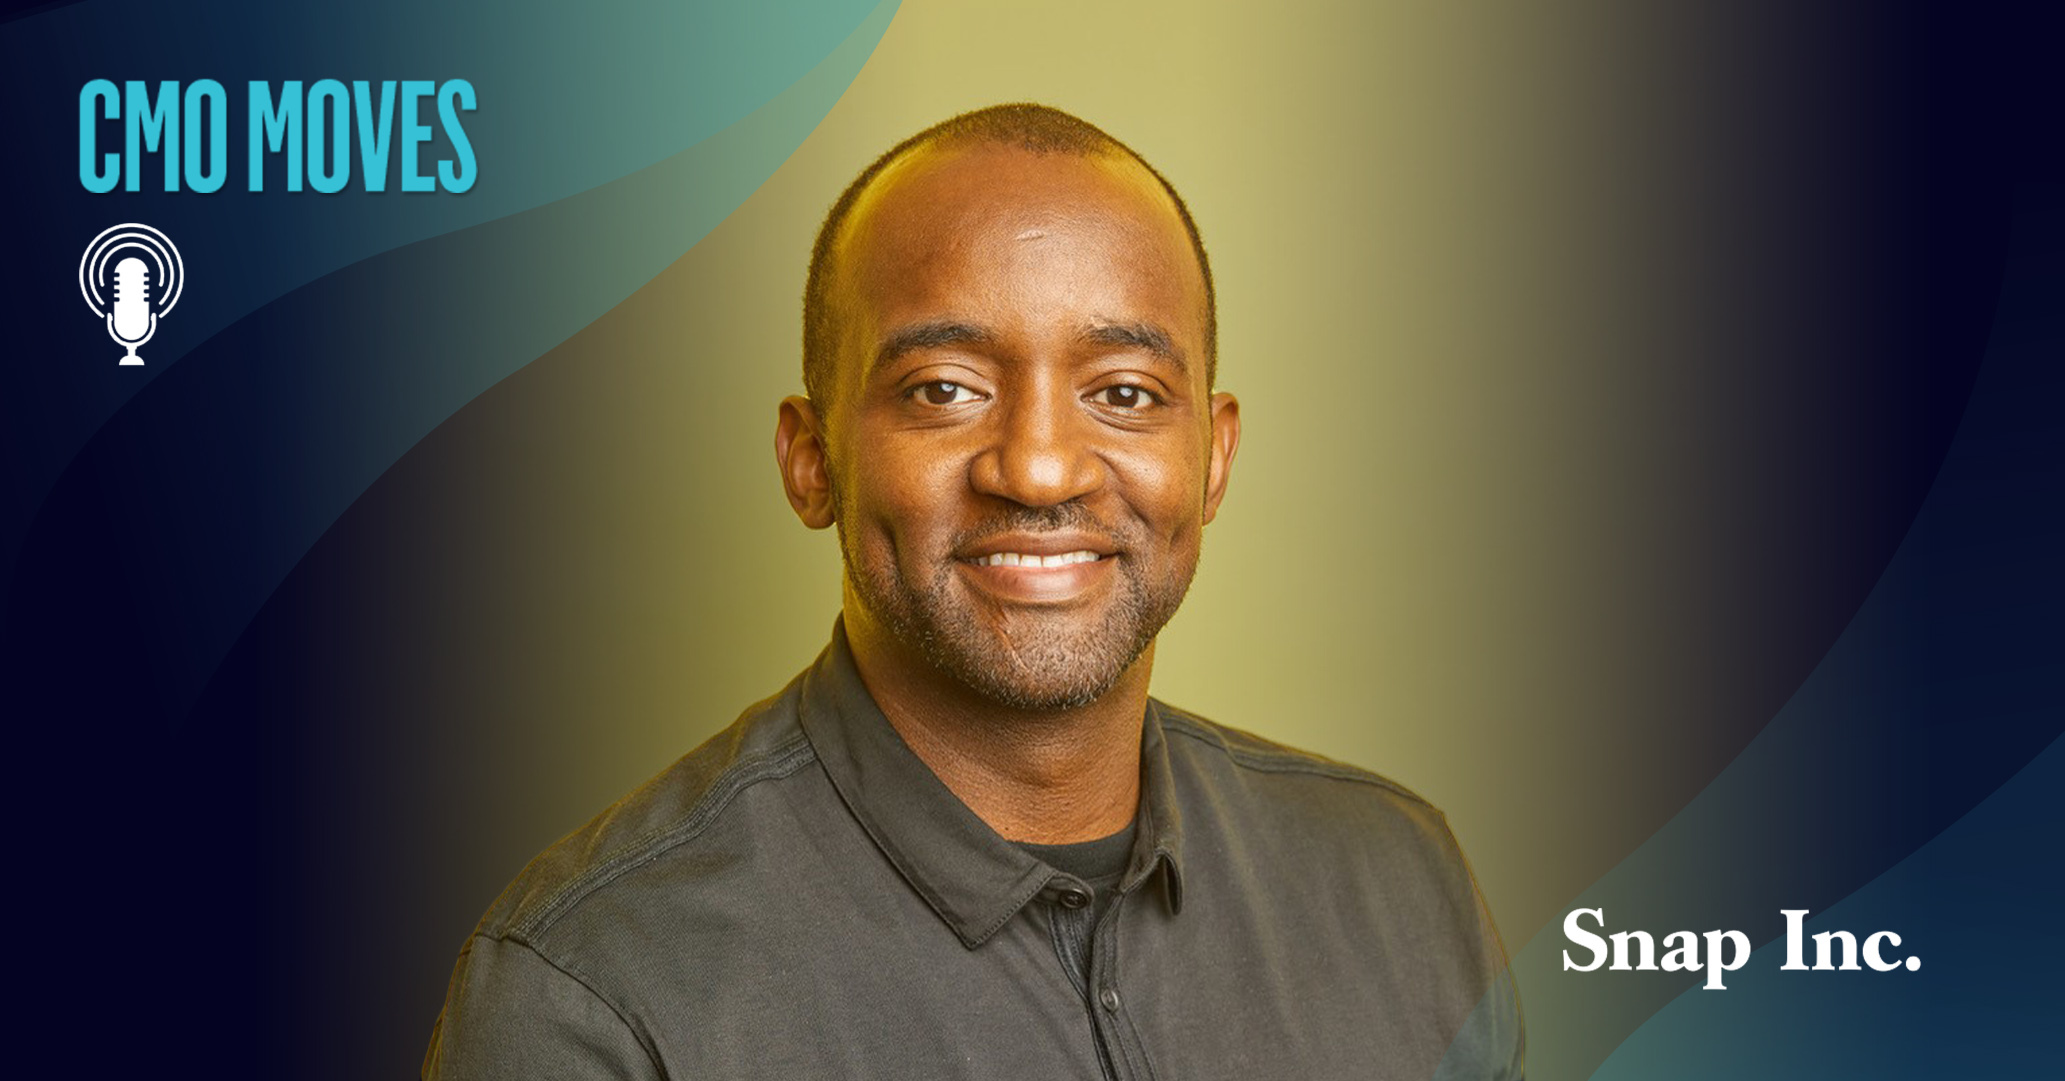 Kenny Mitchell, CMO of Snap, Inc.